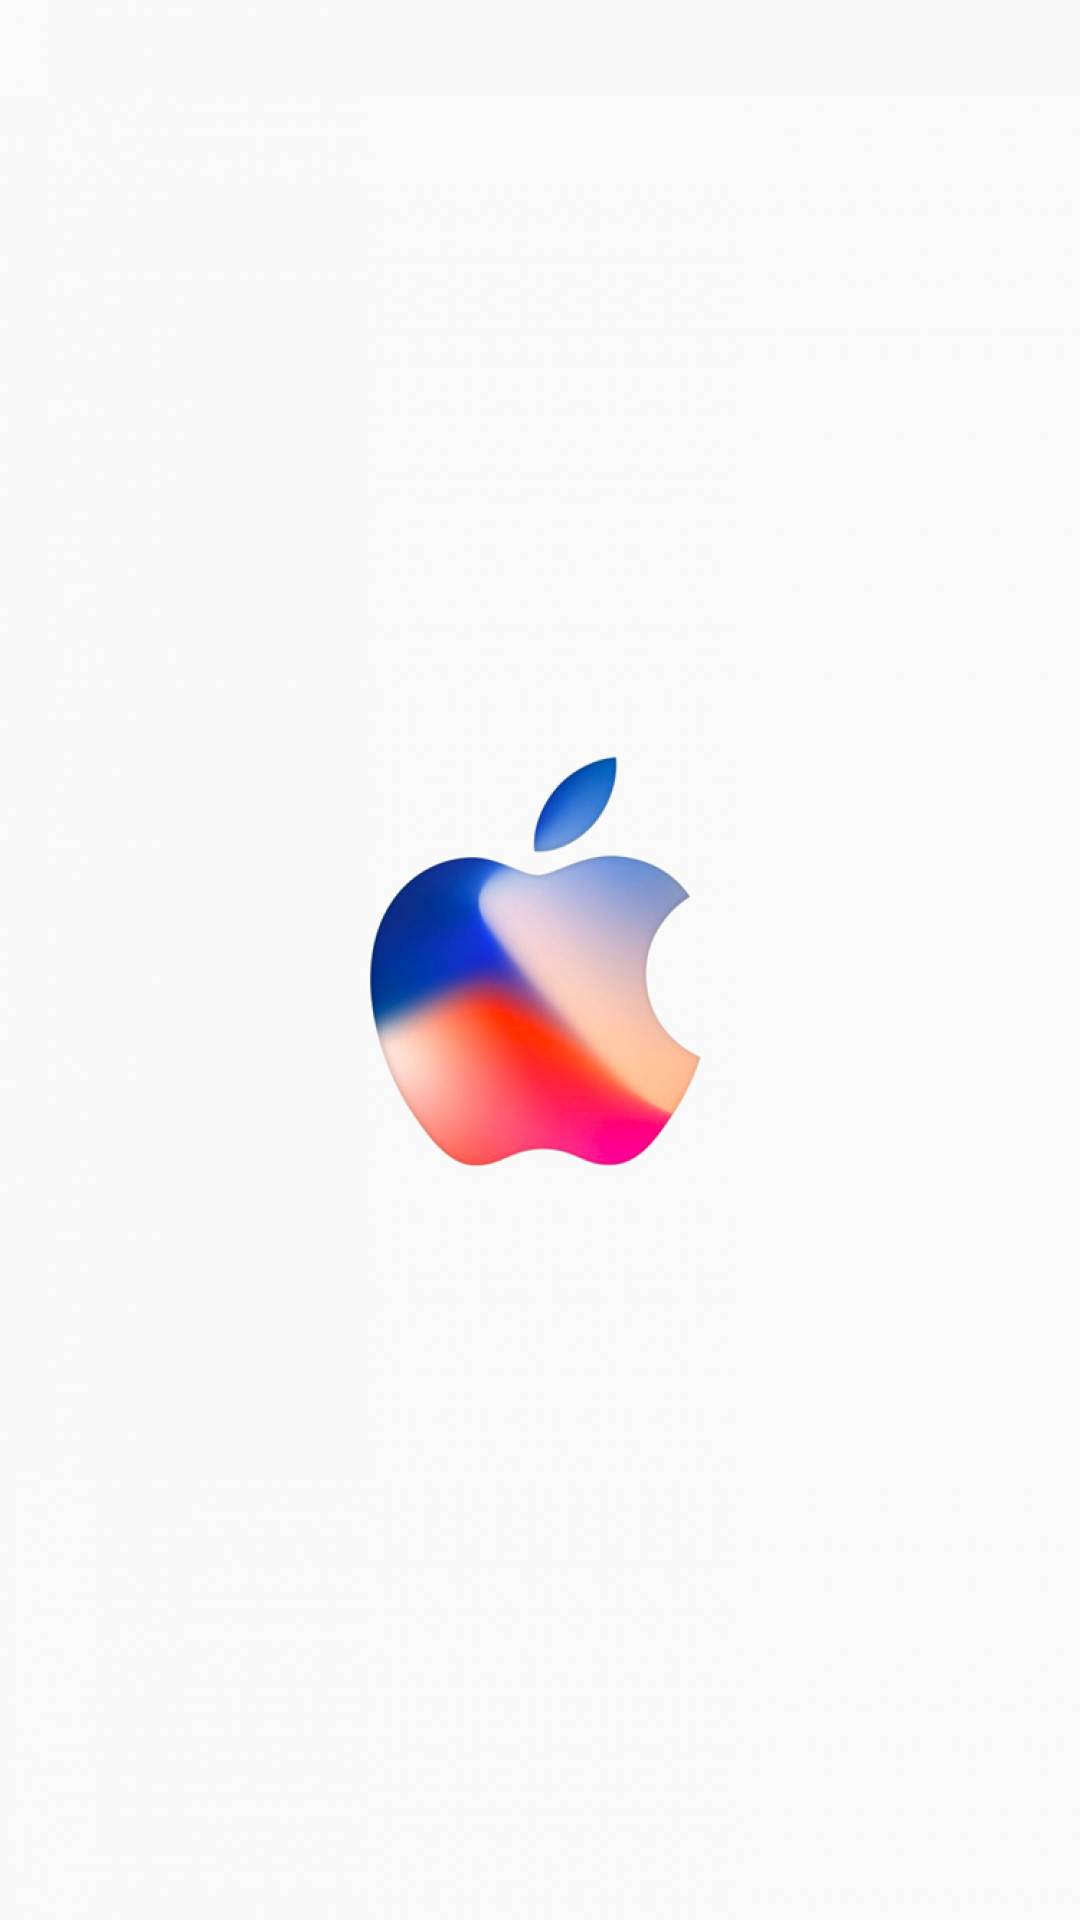 Apple Event 2017 iPhone Wallpaper